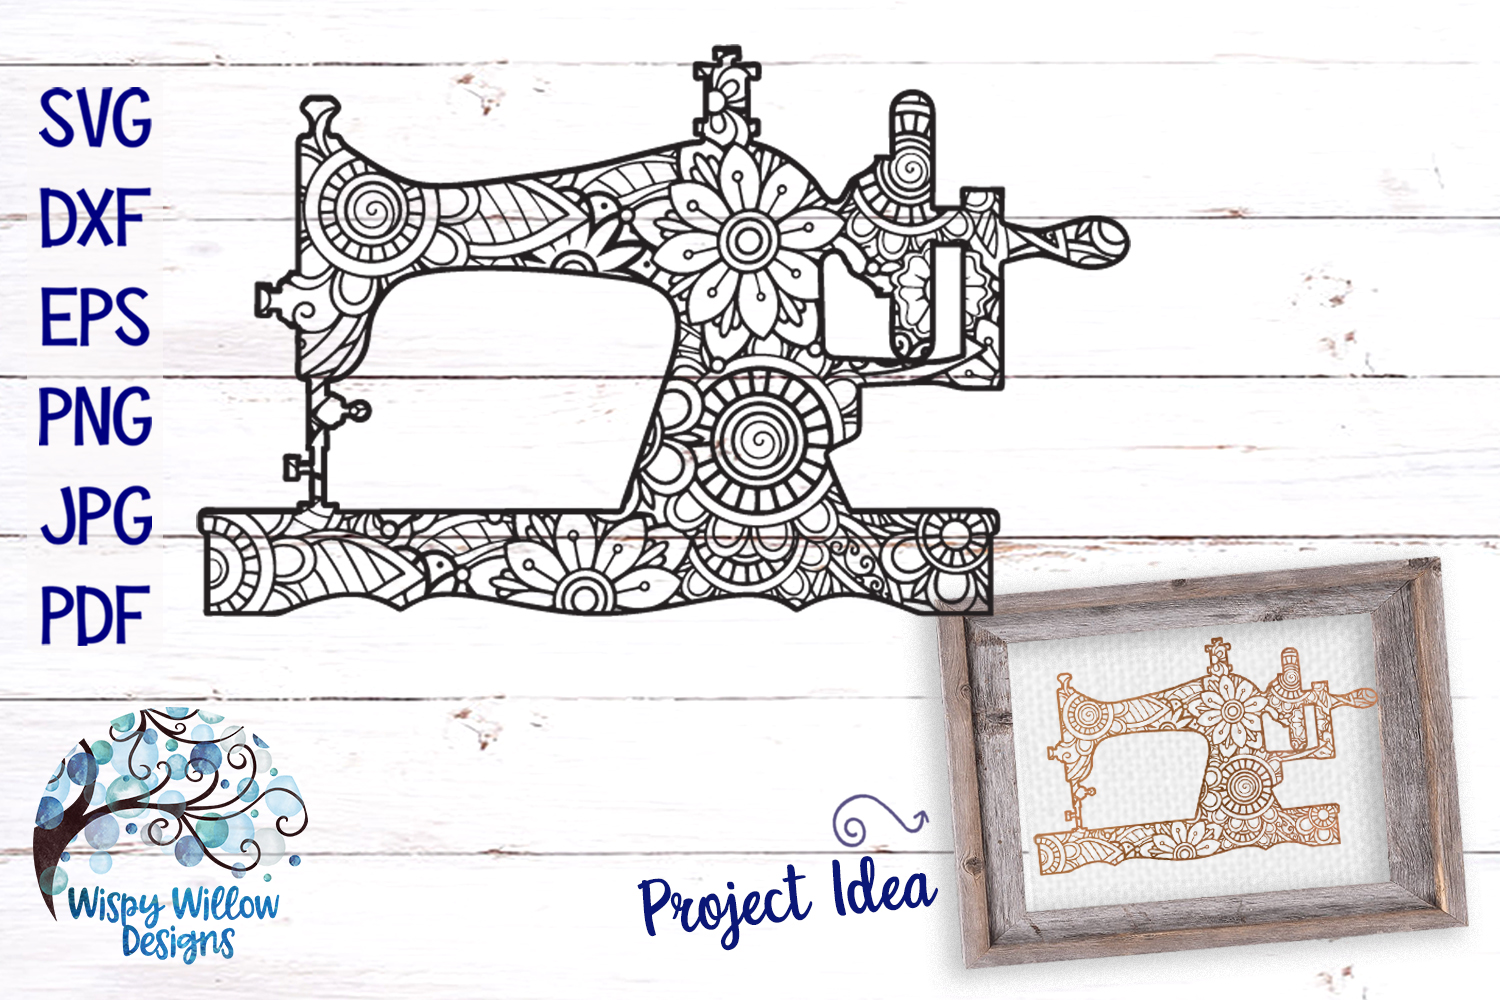 Sewing Machine Zentangle SVG example image 1